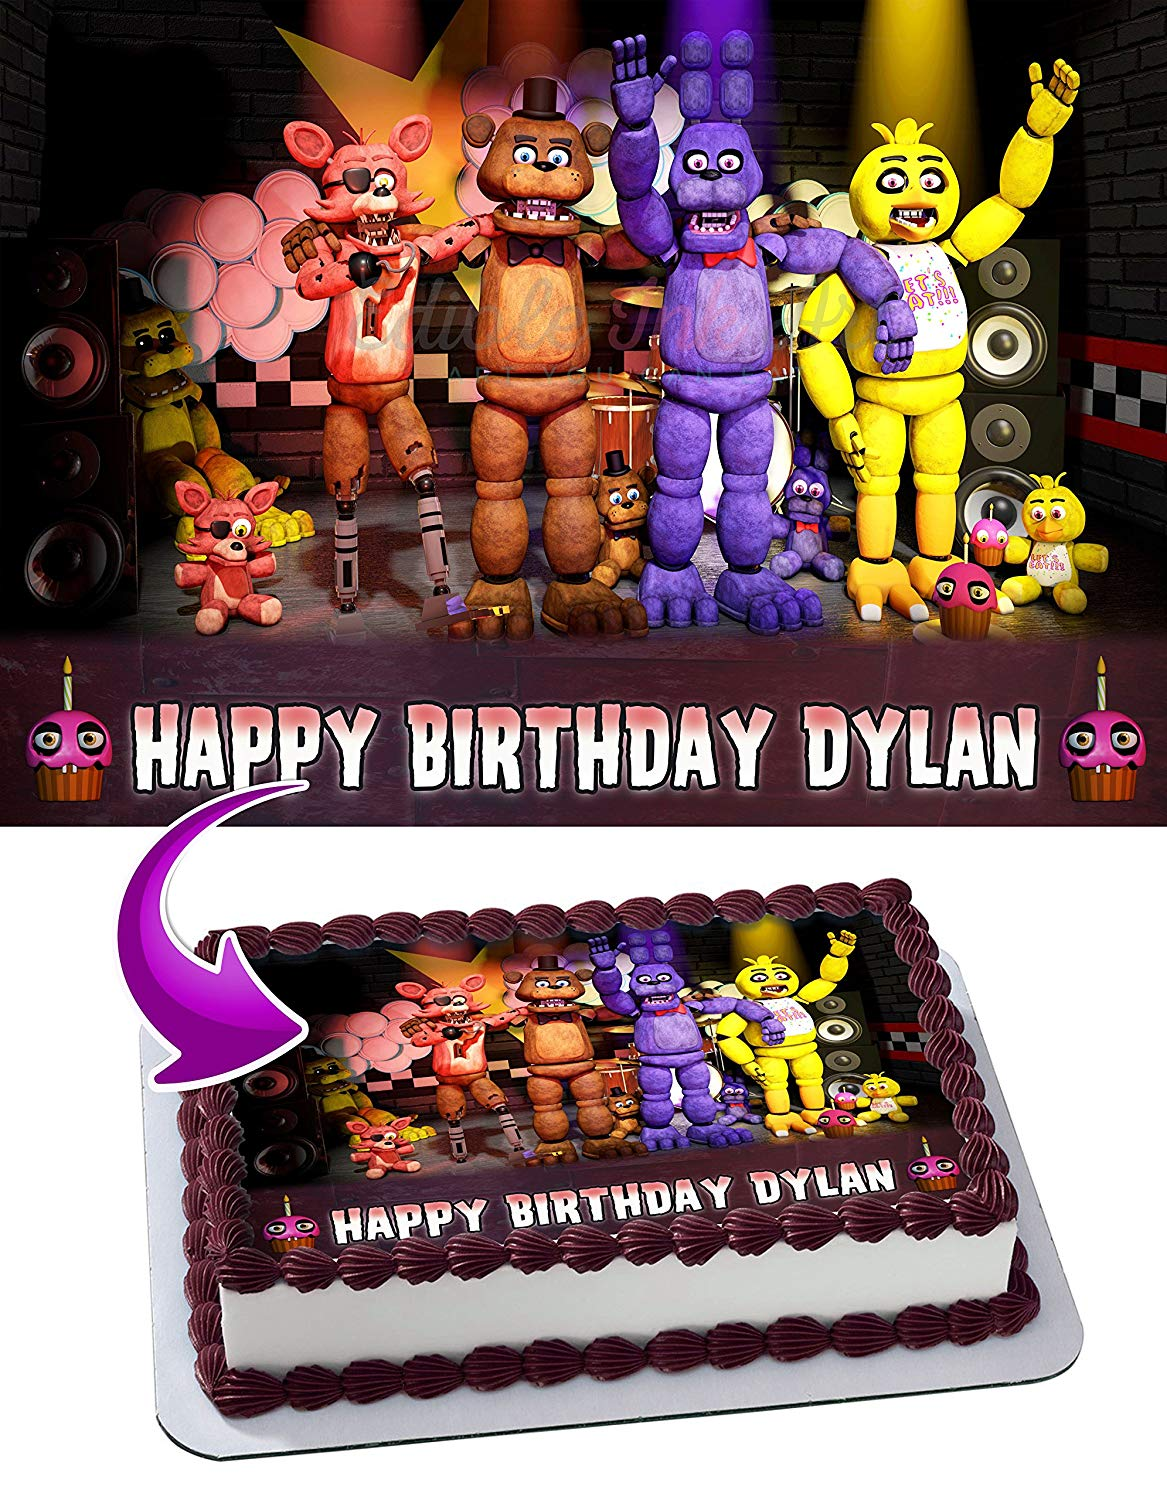 Fnaf Five Nights At Freddy S Edible Cake Image Topper Personalized Picture 1 4 Sheet 8 X10 5 Walmart Com Walmart Com